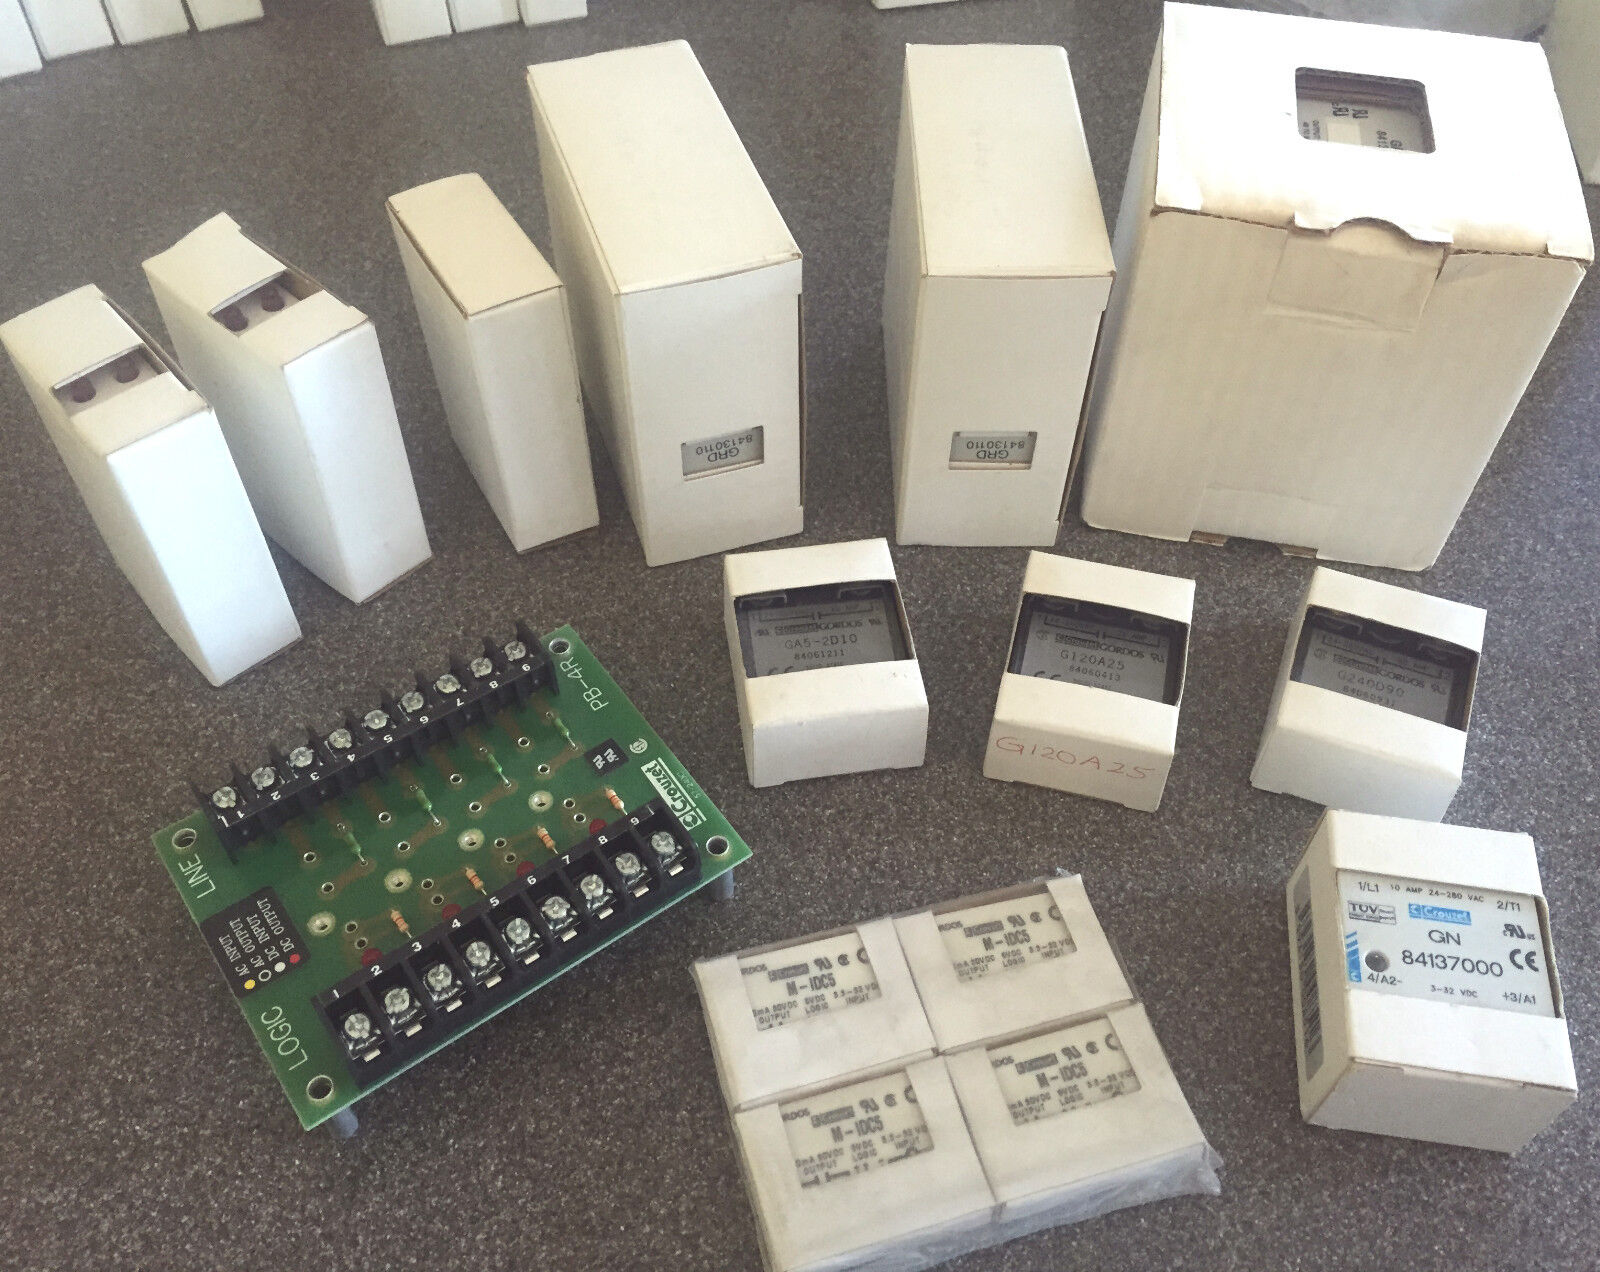 NEW IN BOX  Crouzet RELAY WITH HEAT SINK 84134110 Ss Panel Mount 660V 32Vdc 25A